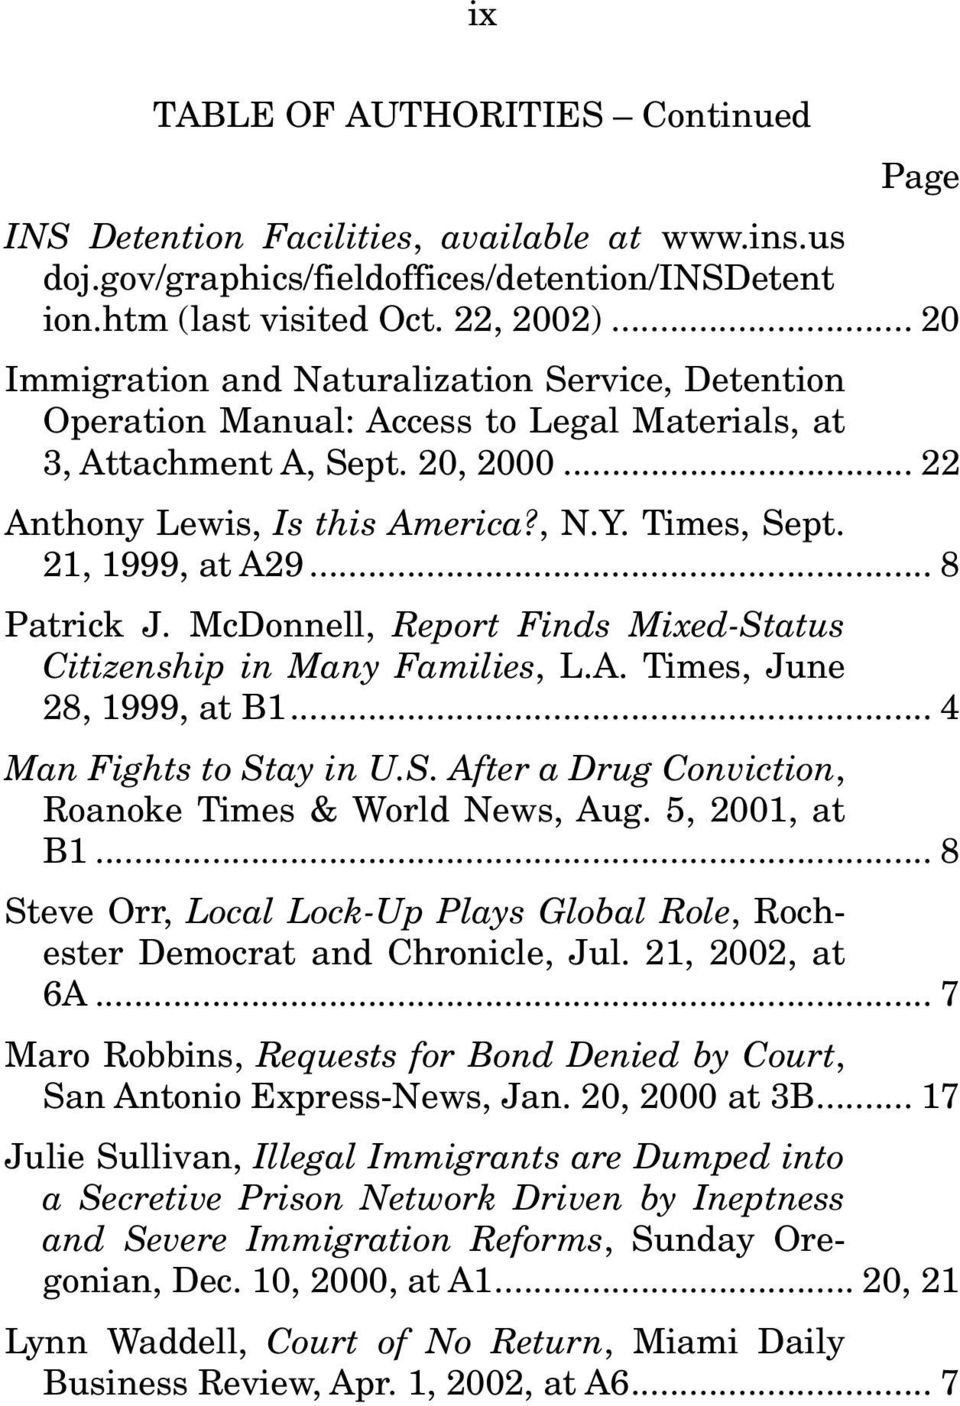 21, 1999, at A29... 8 Patrick J. McDonnell, Report Finds Mixed-Status Citizenship in Many Families, L.A. Times, June 28, 1999, at B1... 4 Man Fights to Stay in U.S. After a Drug Conviction, Roanoke Times & World News, Aug.